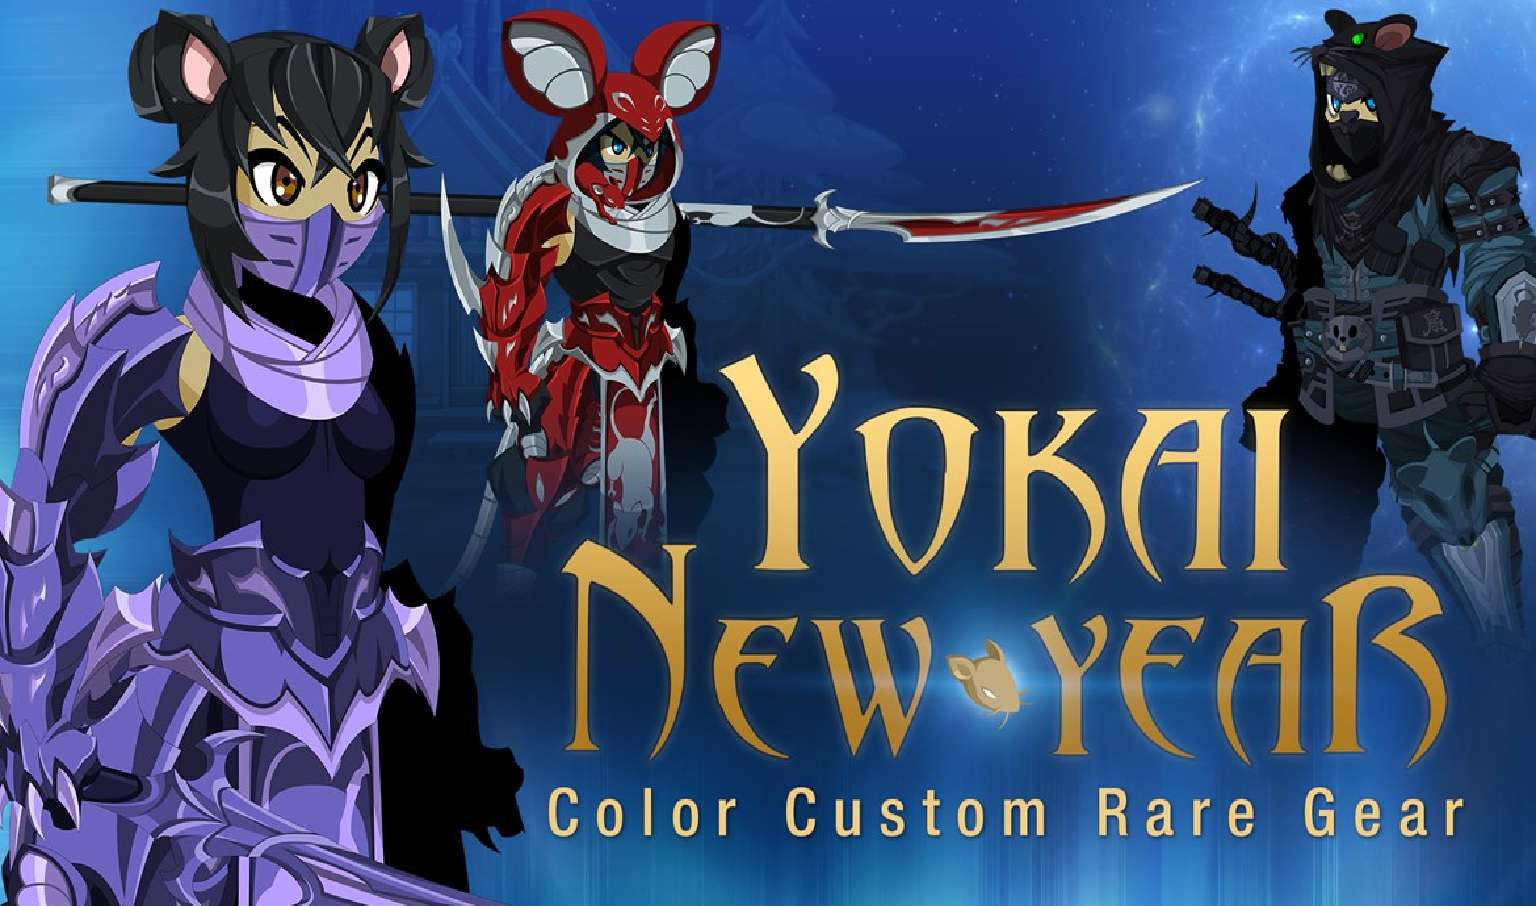 AdventureQuest Worlds Celebrates The Lunar New Year With Yokai New Year